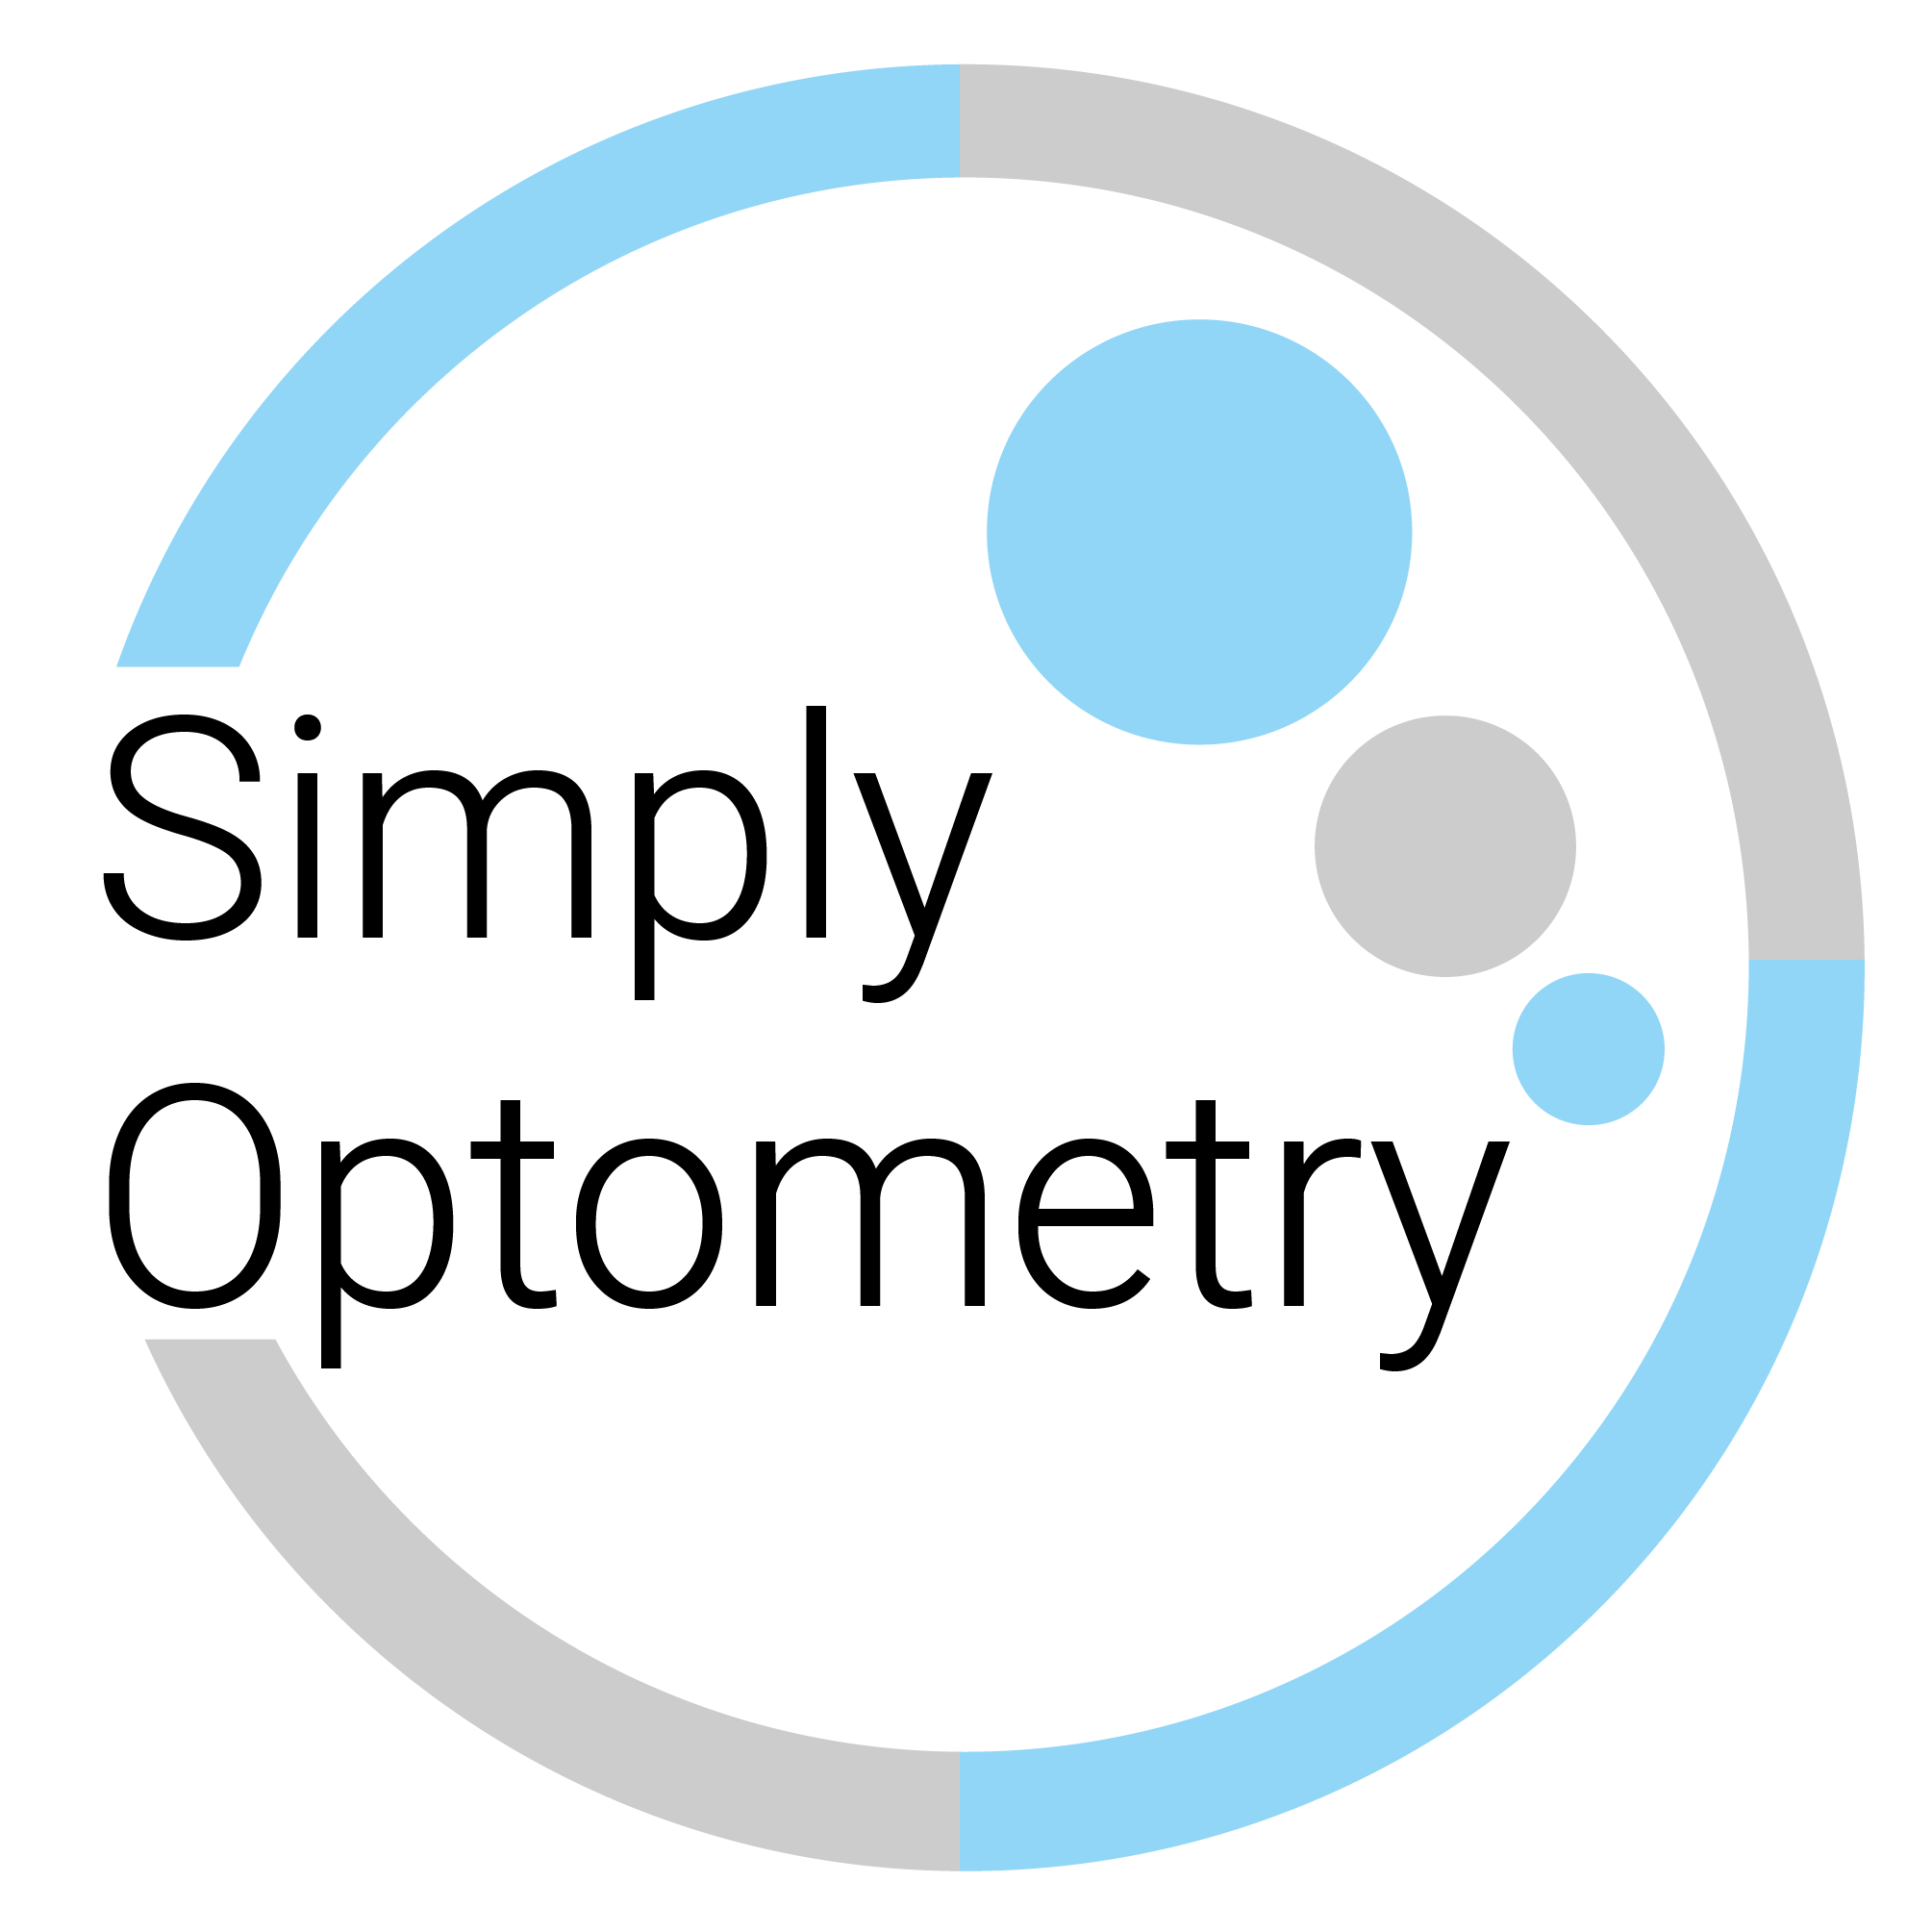 Simply Optometry